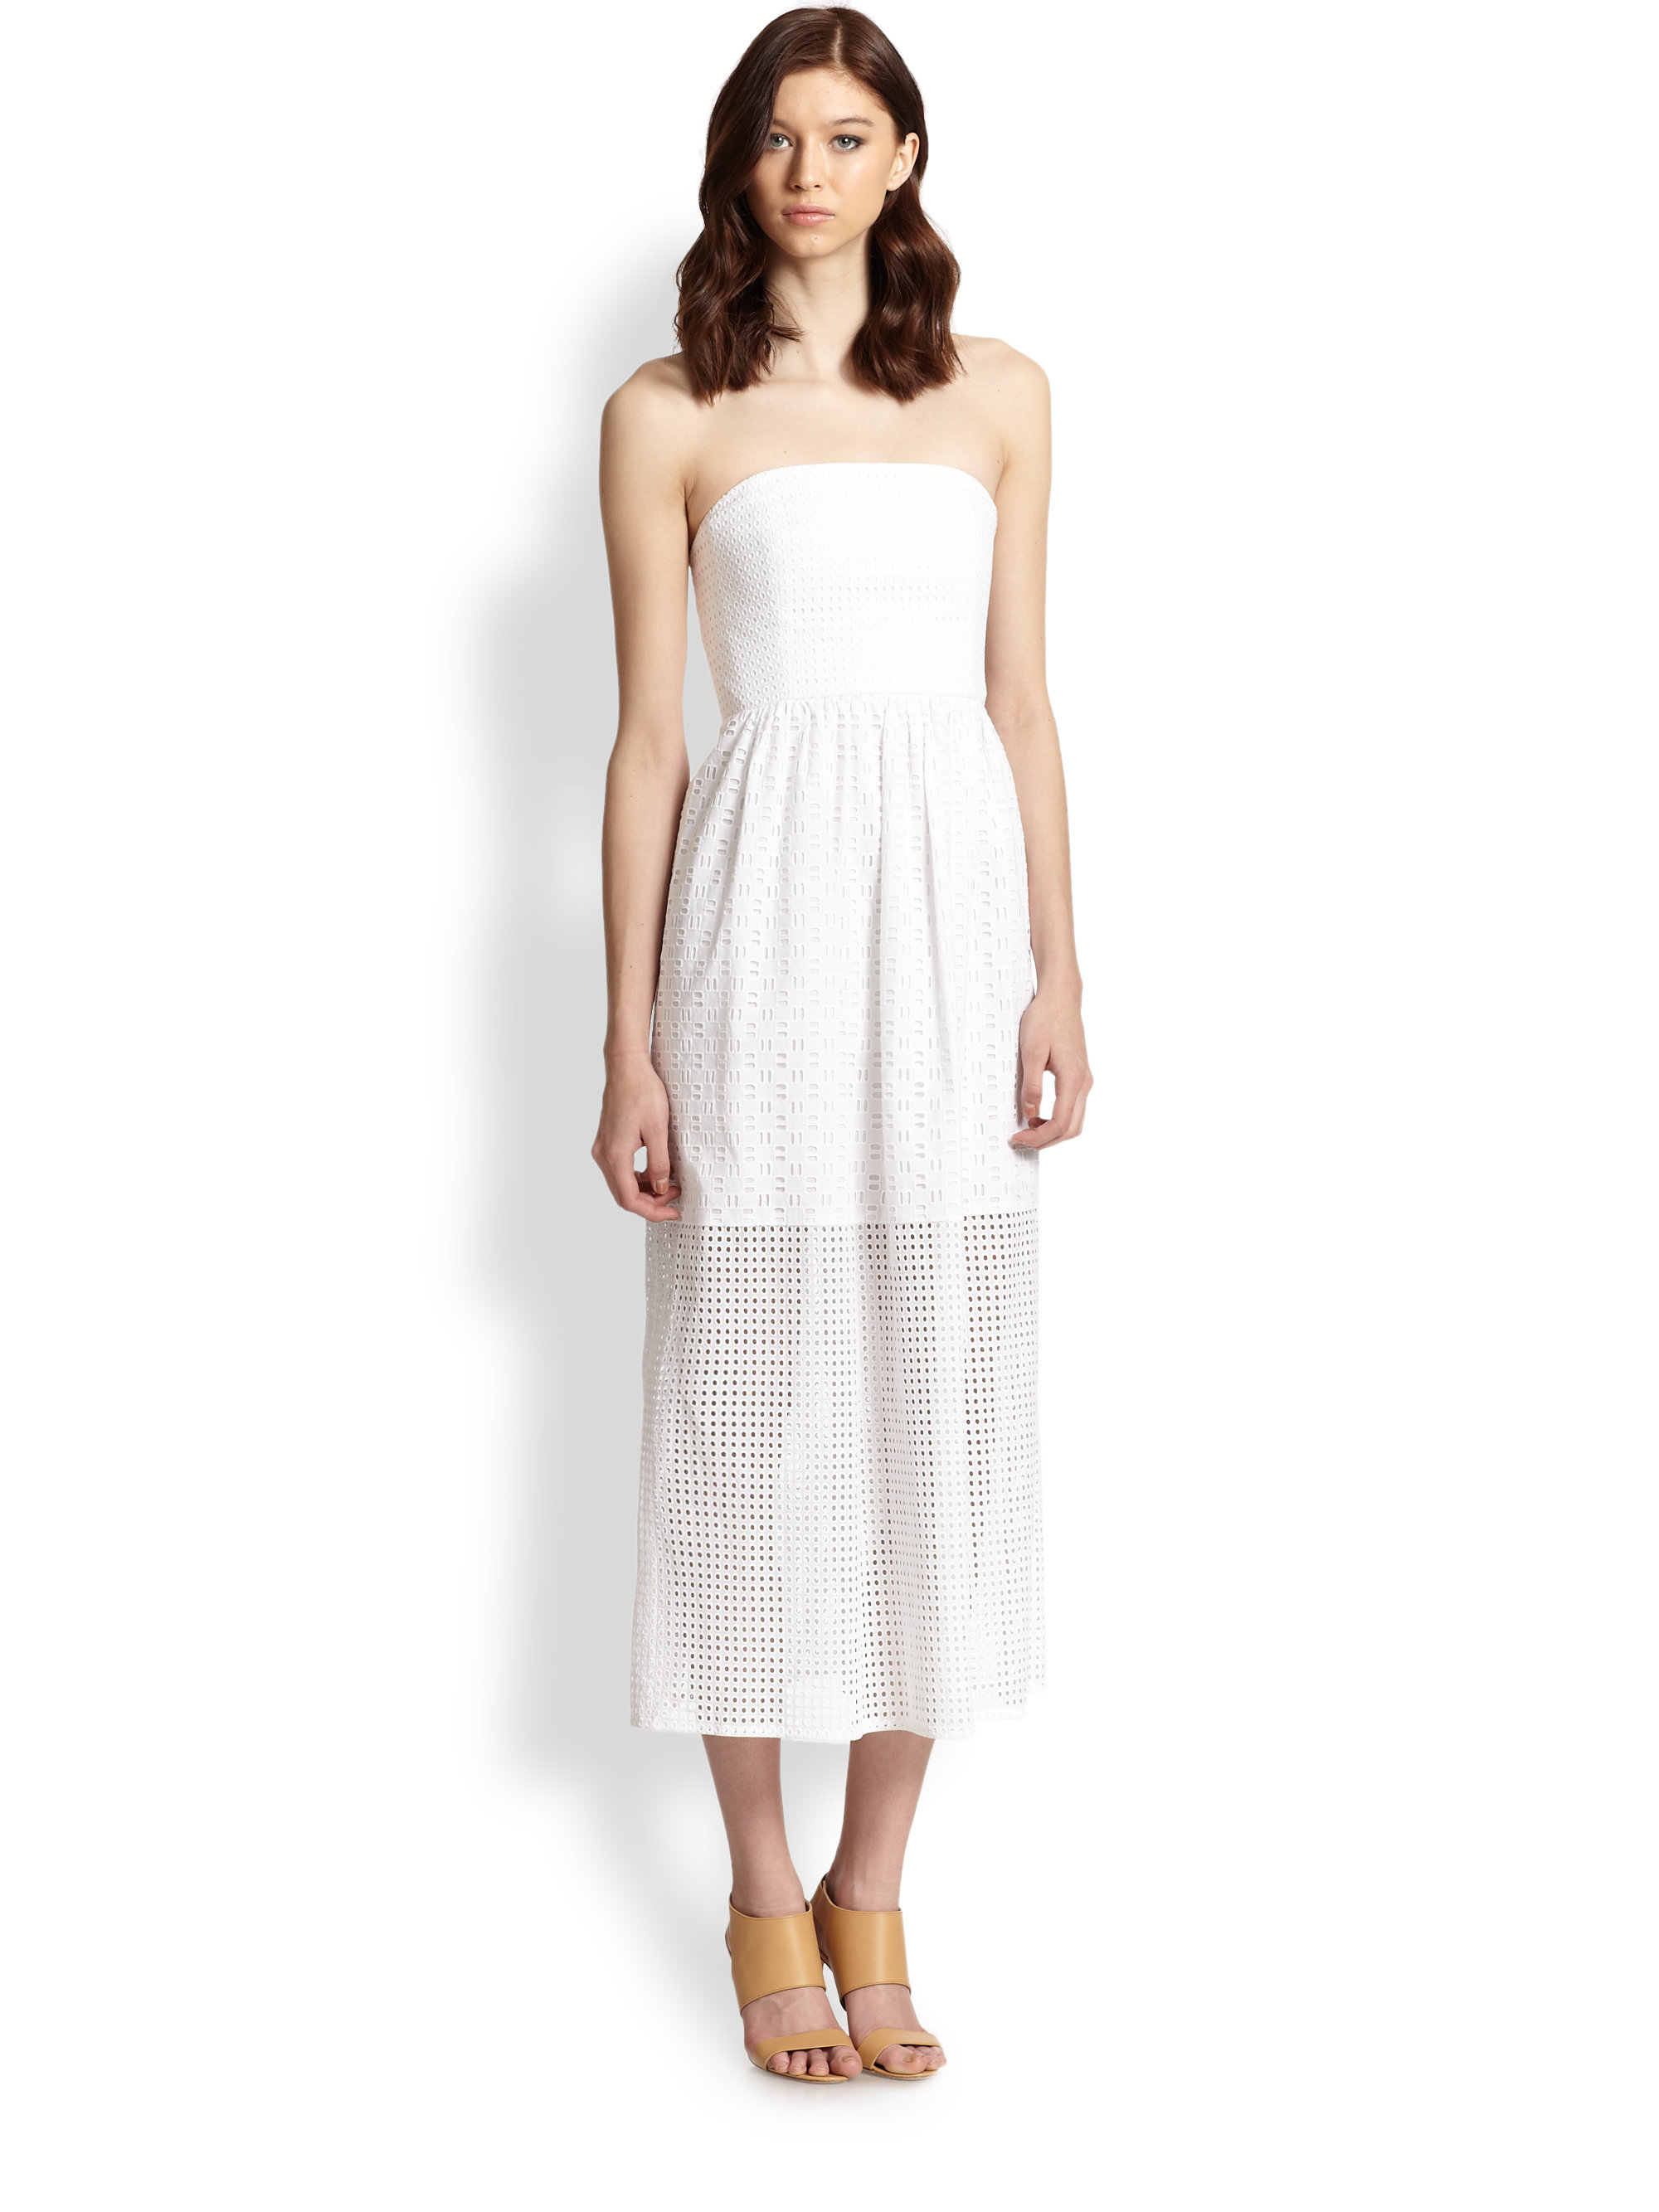 Tibi Kat Strapless Cotton Eyelet Dress in White | Lyst